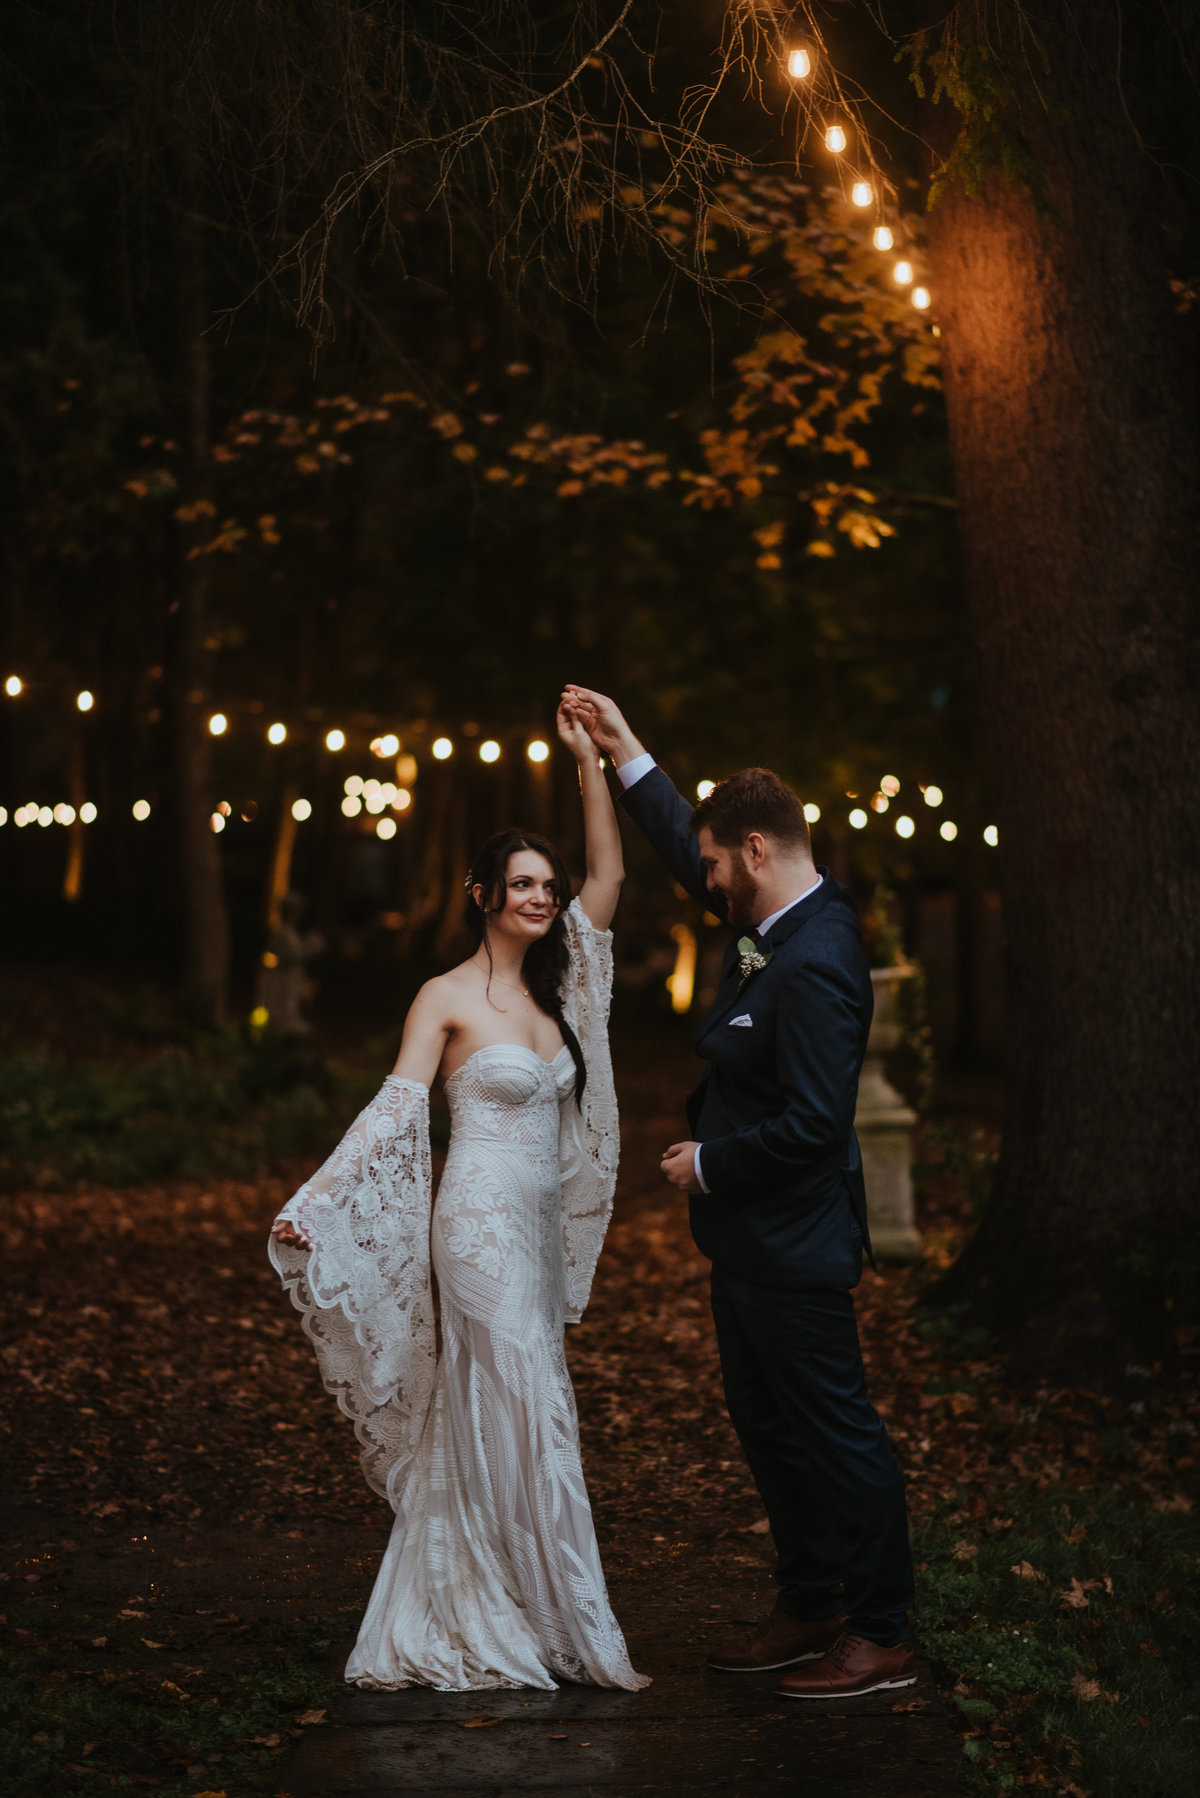 CatskillsJulietandEric2019WeddingPhotography (131 of 213)